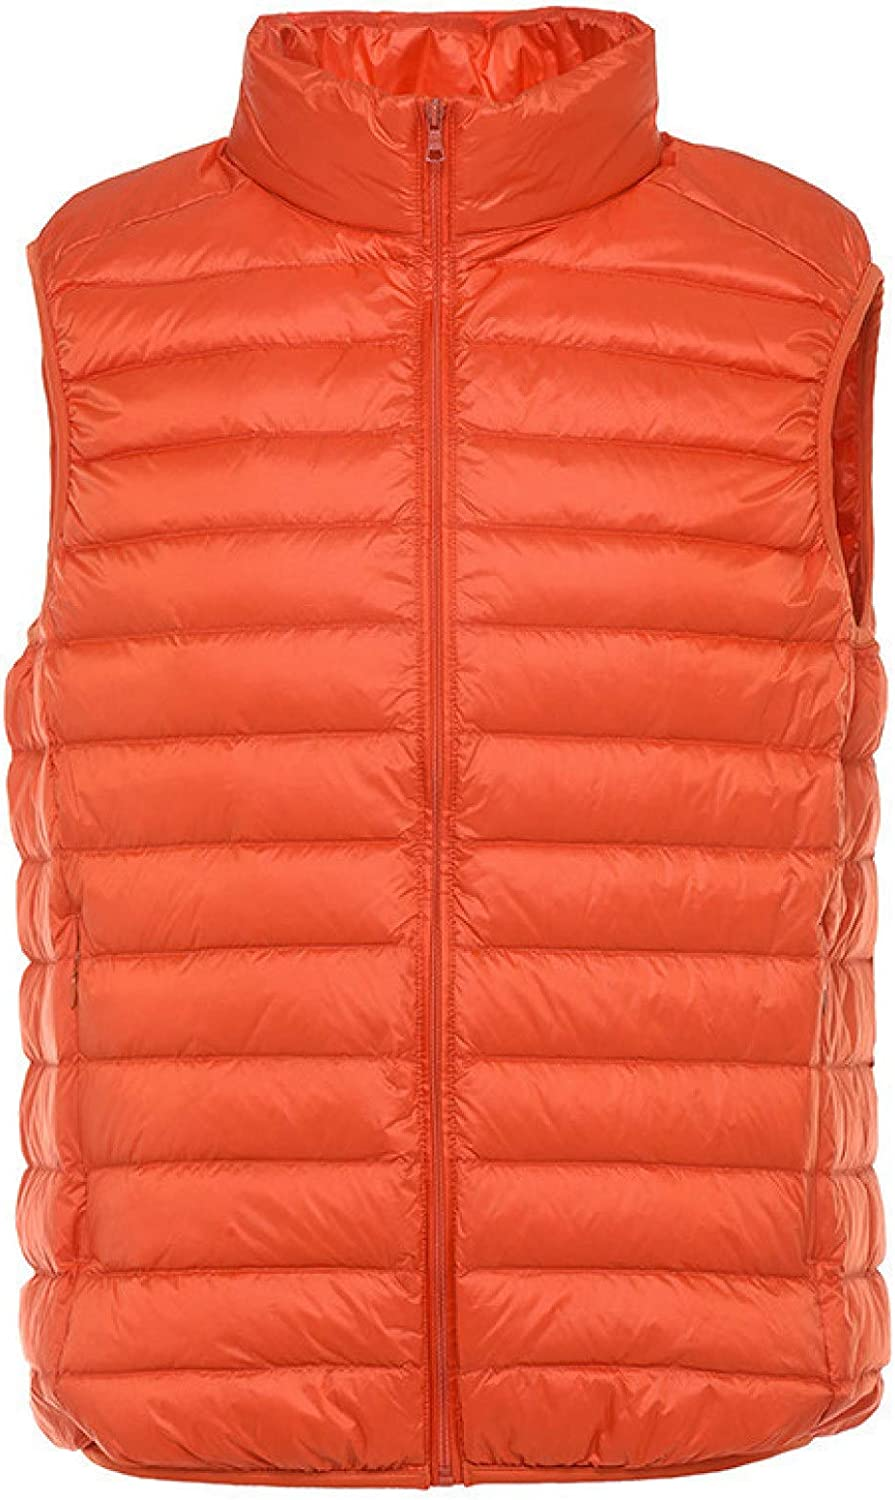 Men Packable Lightweight Puffer Vest Water-Resistant Polyester Thickened Warm Sleeveless Jackets Gilet for Outdoor Travel